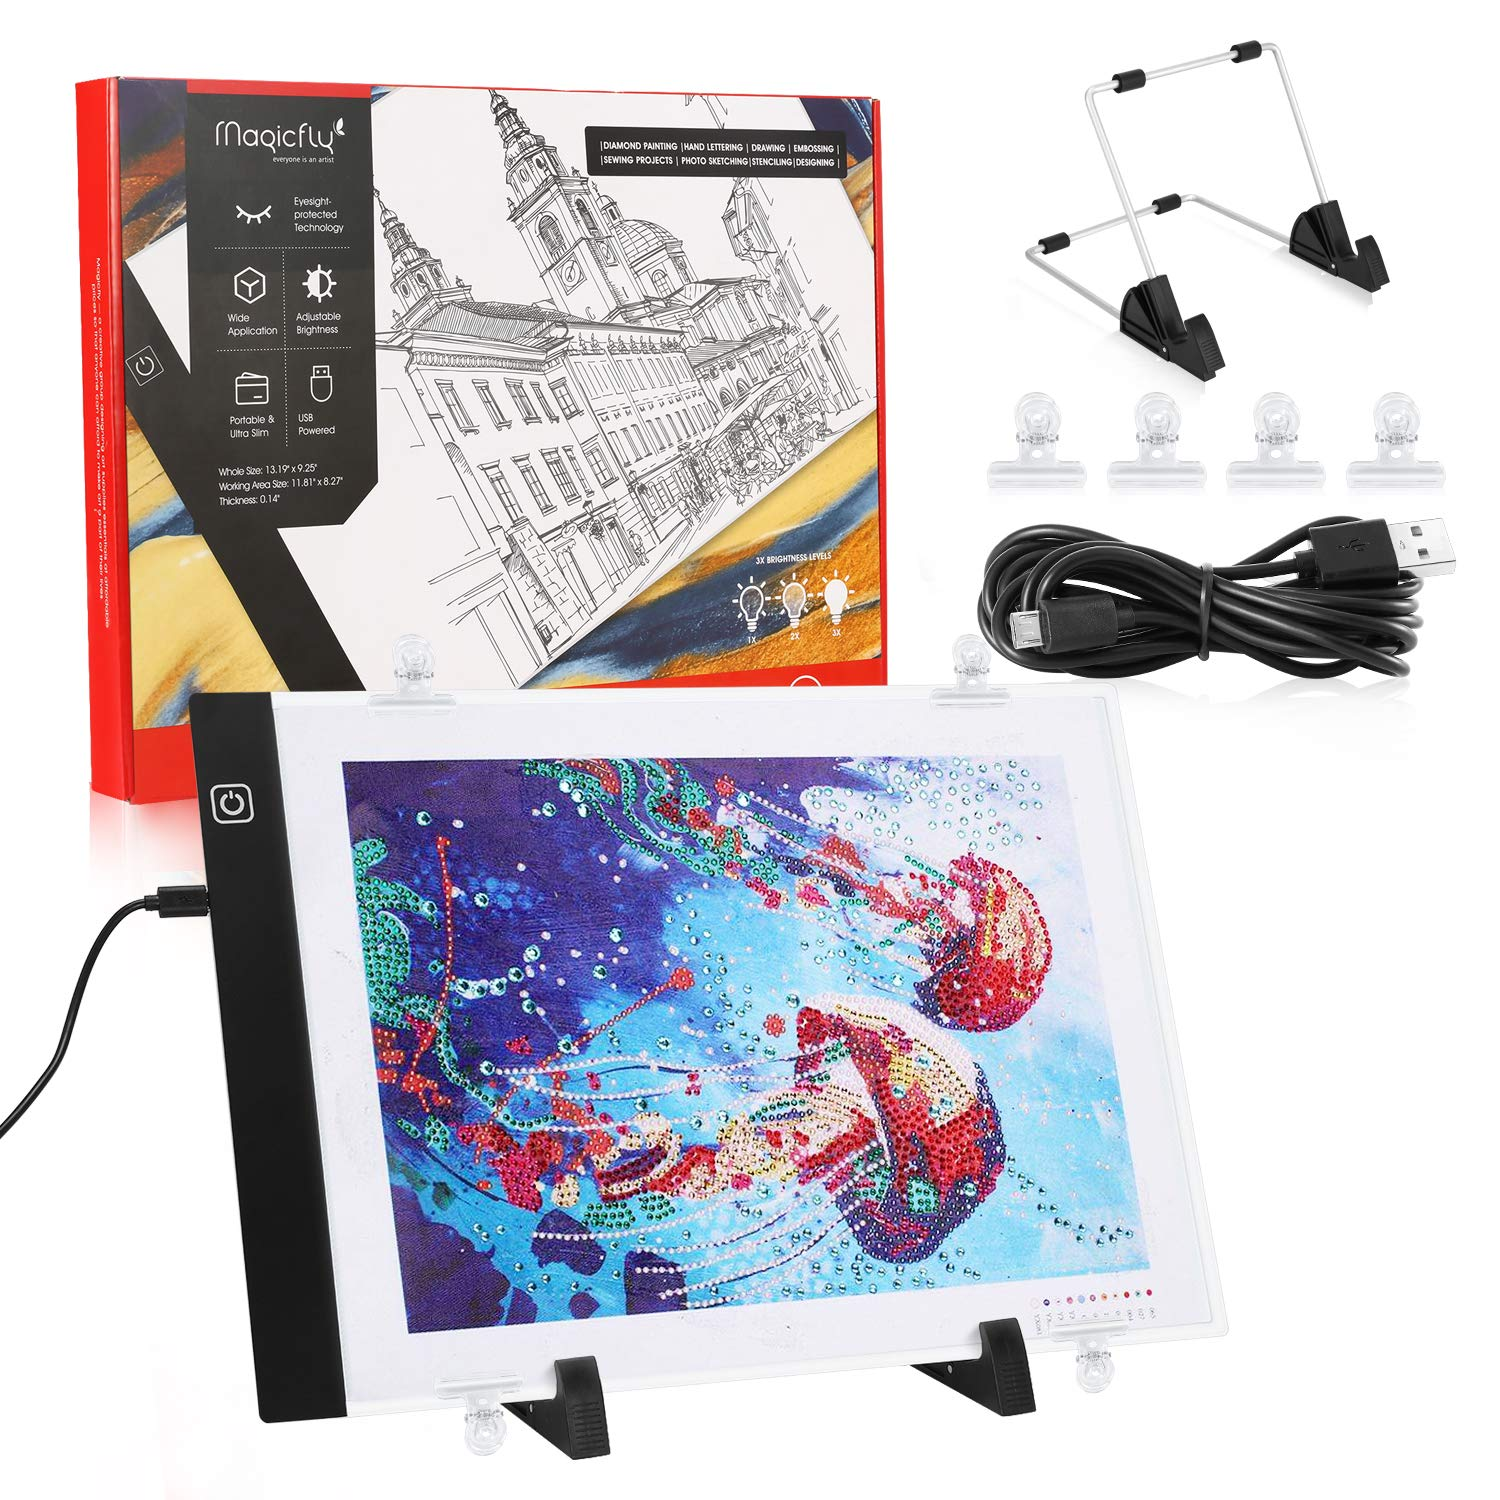 Magicfly Diamond Painting A4 LED Light Pad, Tracing Light Box for Drawing, Dimmable Light Board Kit with USB Cable, for DIY 5D Diamond Painting, Drawing, Embossing, Stenciling, Designing by Magicfly